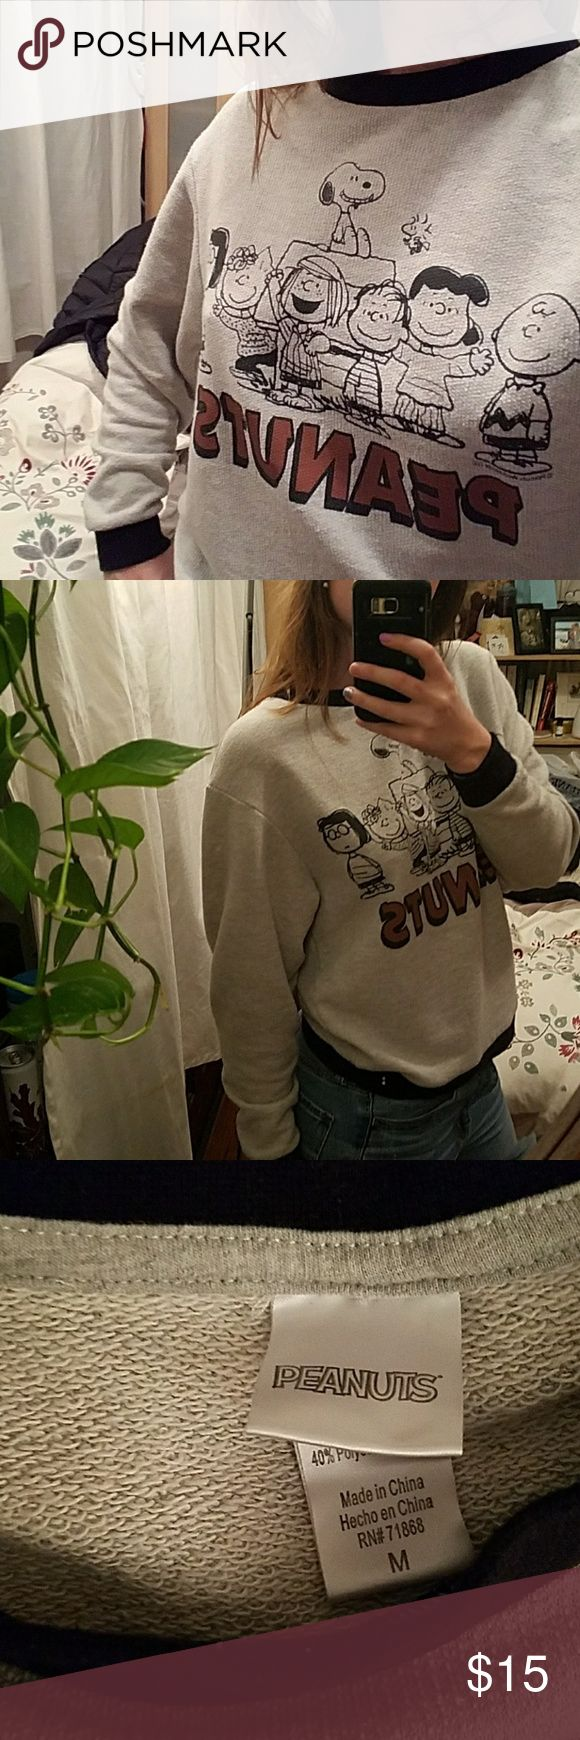 Peanuts! Graphic sweater Peanuts brand sweatshirt. Liteweight but comfortable and cute. Super nostalgic. Good condition but light pilling. Peanuts Sweaters